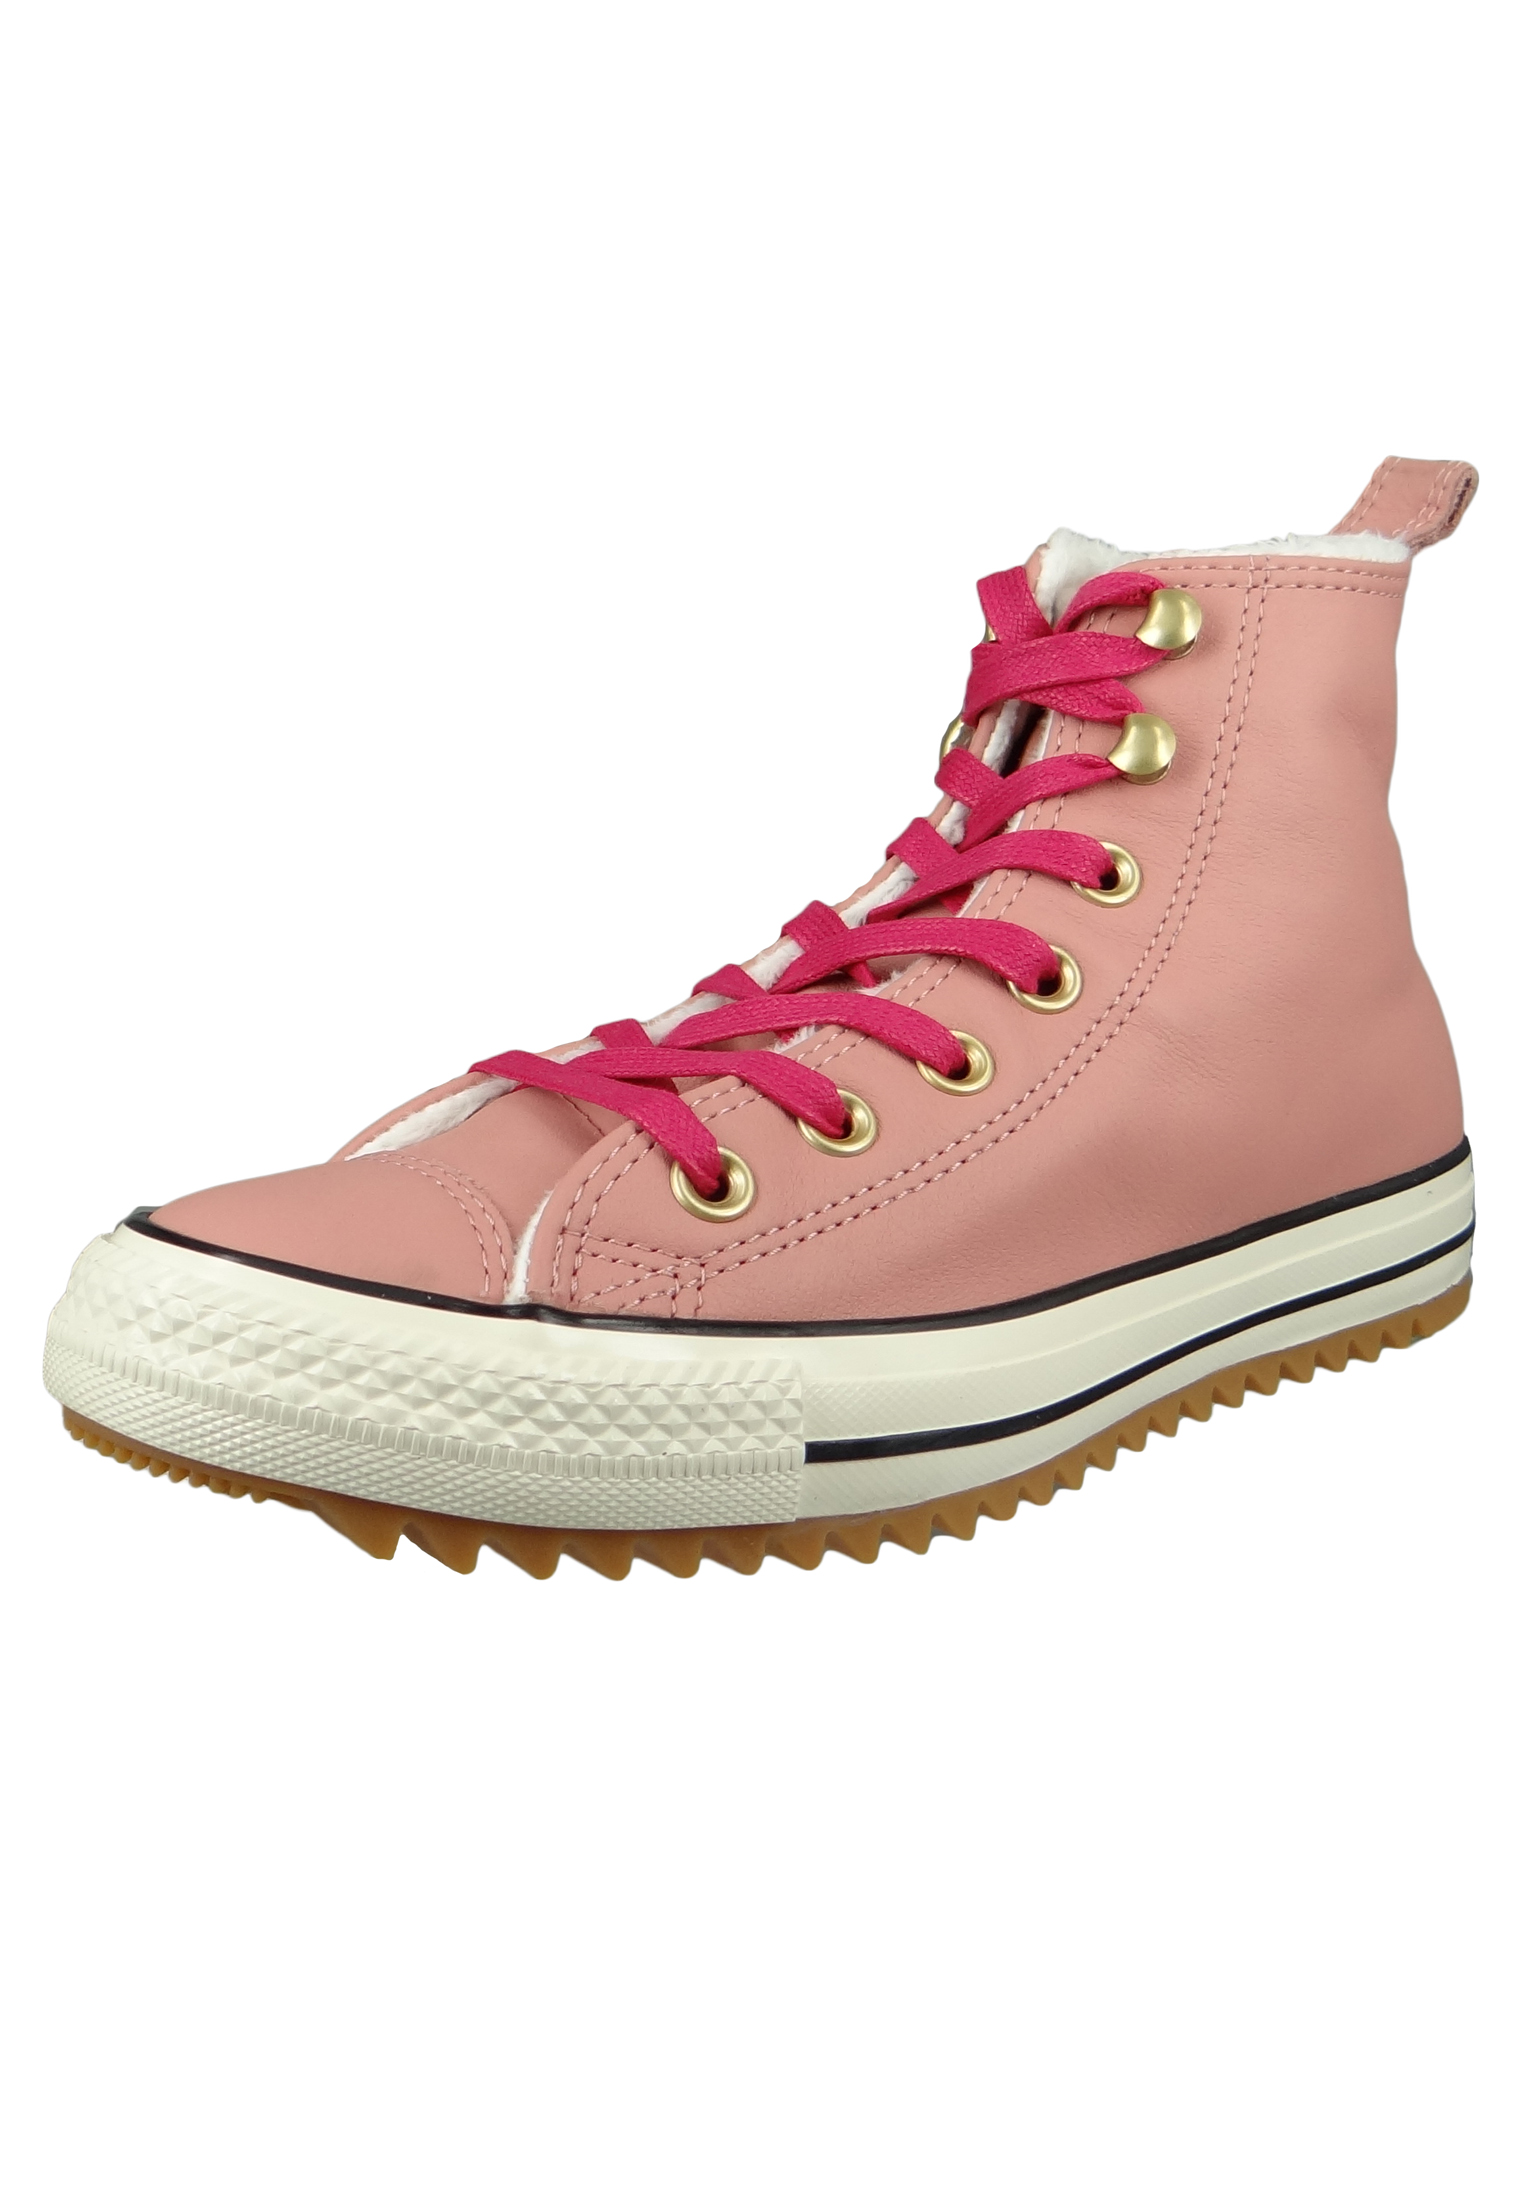 f3768781ade Converse Chucks 162477C Pink Leder Chuck Taylor All Star Hiker Boot Rust  Pink Pink Pop